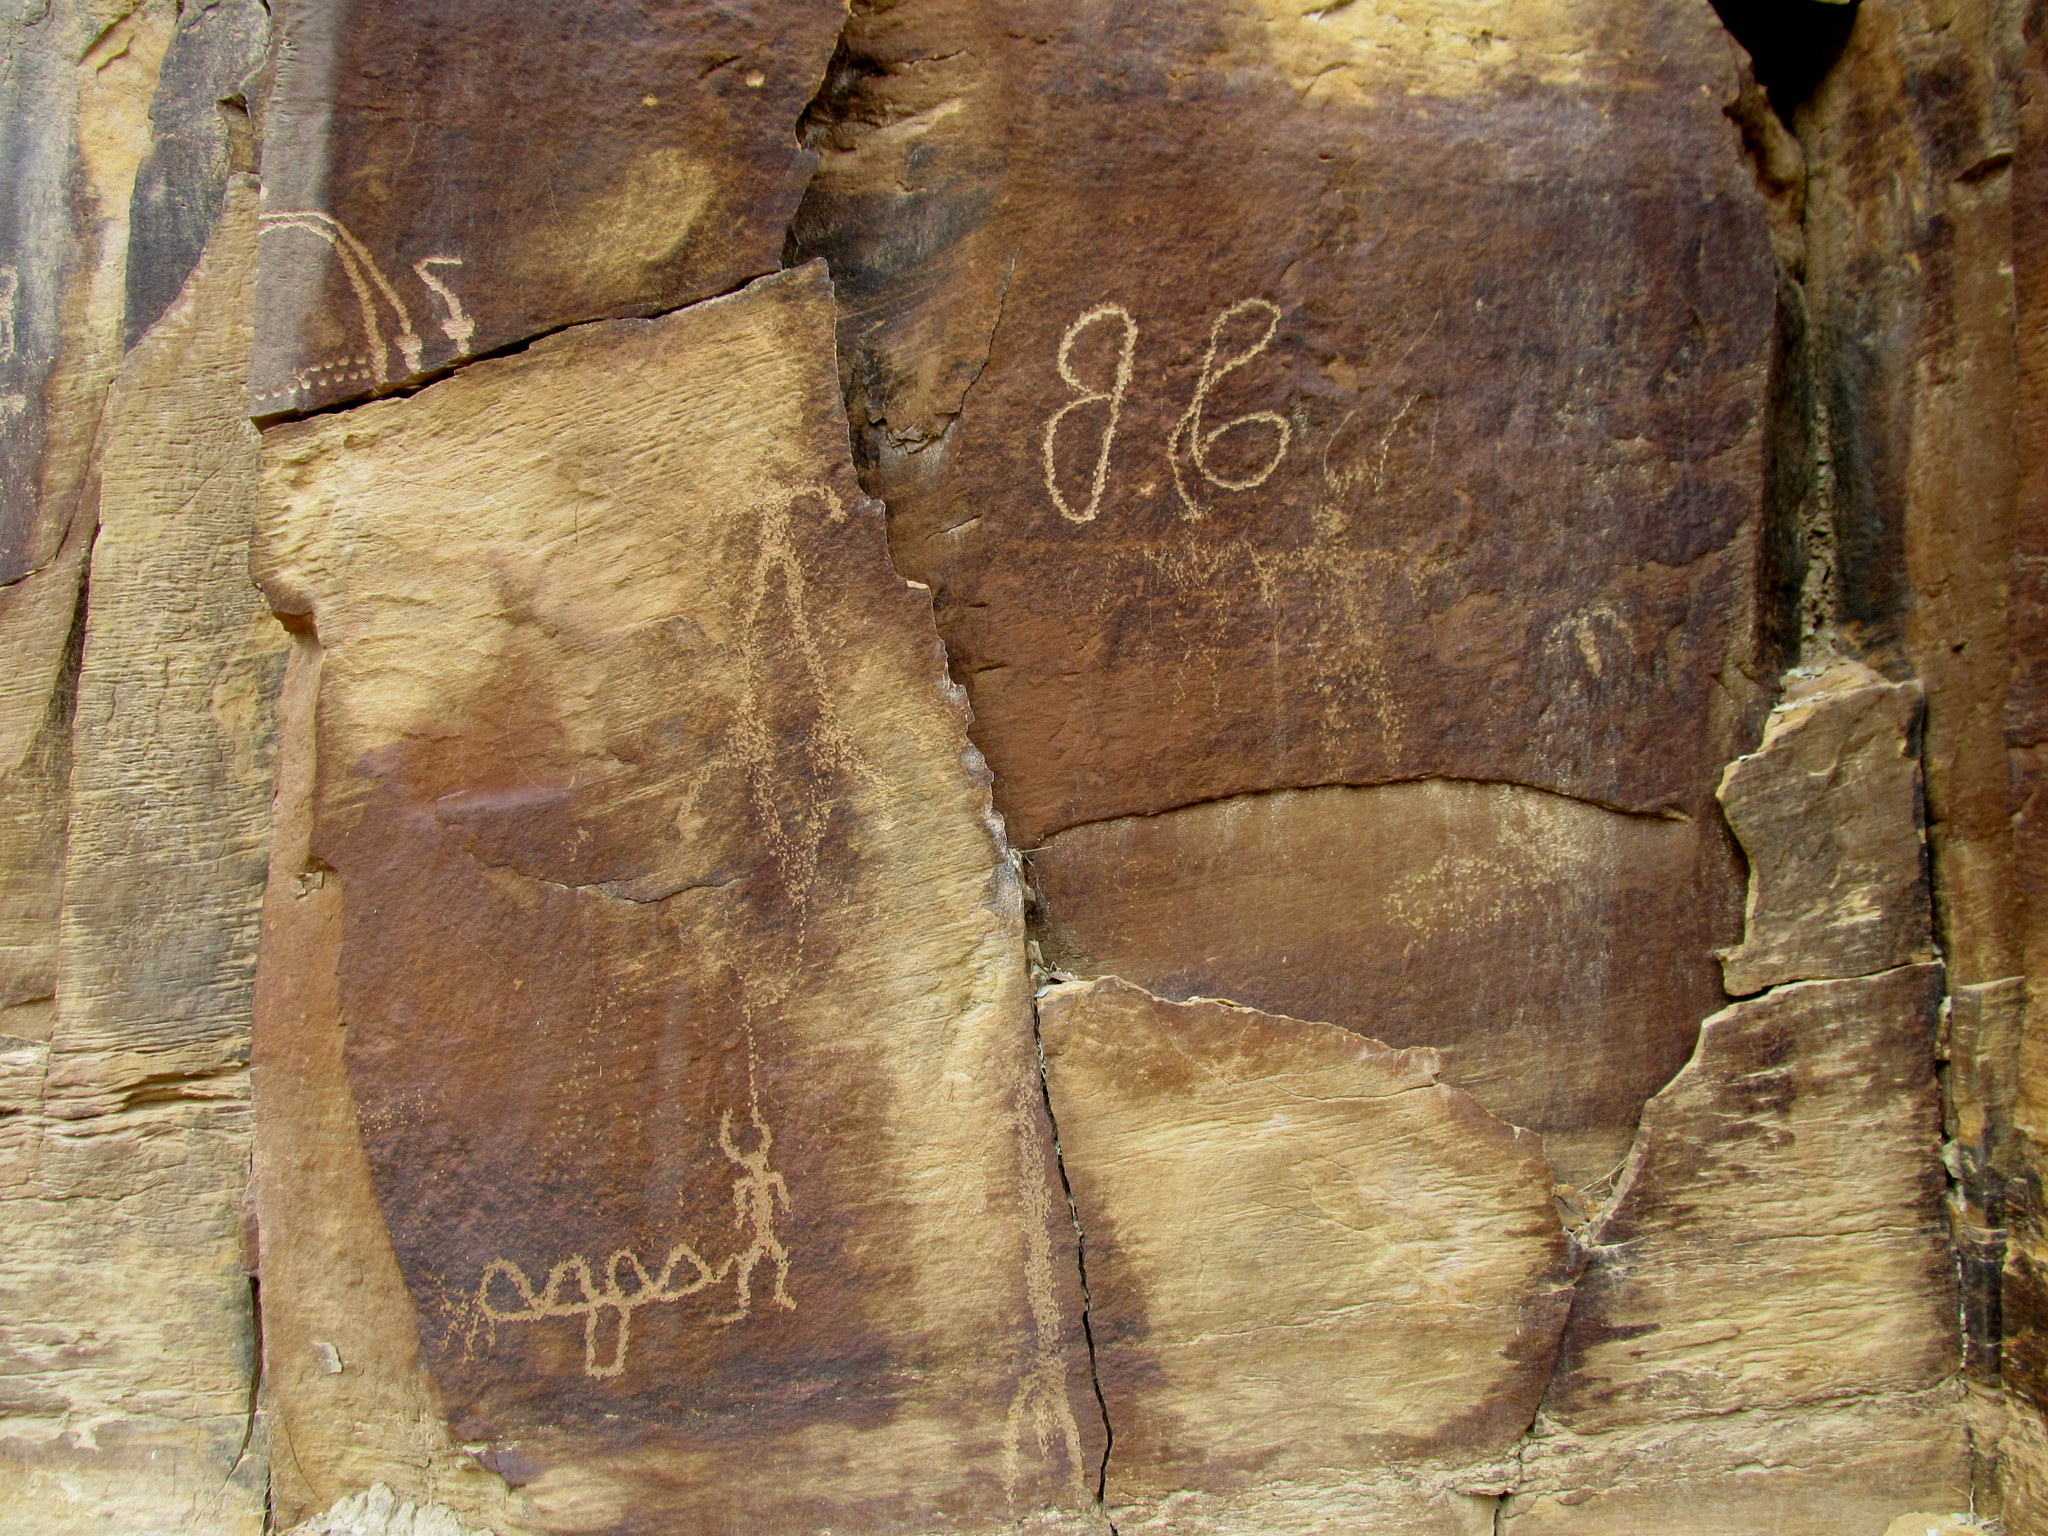 Photo: Petroglyphs and historic graffiti